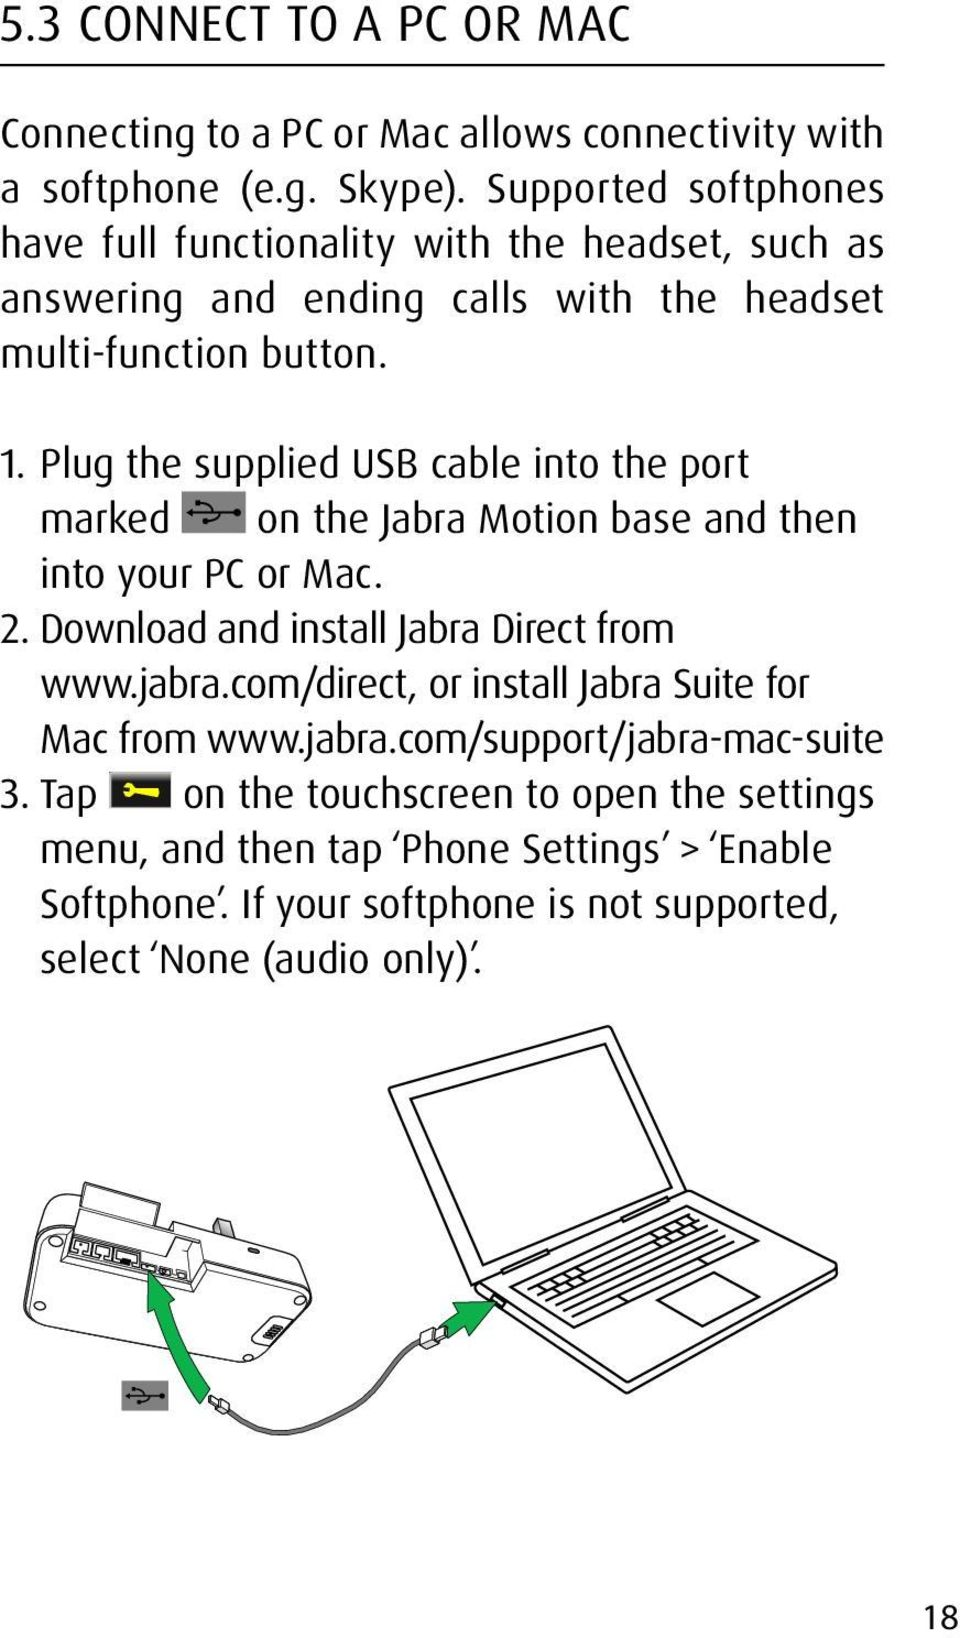 Plug the supplied USB cable into the port marked on the Jabra Motion base and then into your PC or Mac. 2. Download and install Jabra Direct from www.jabra.